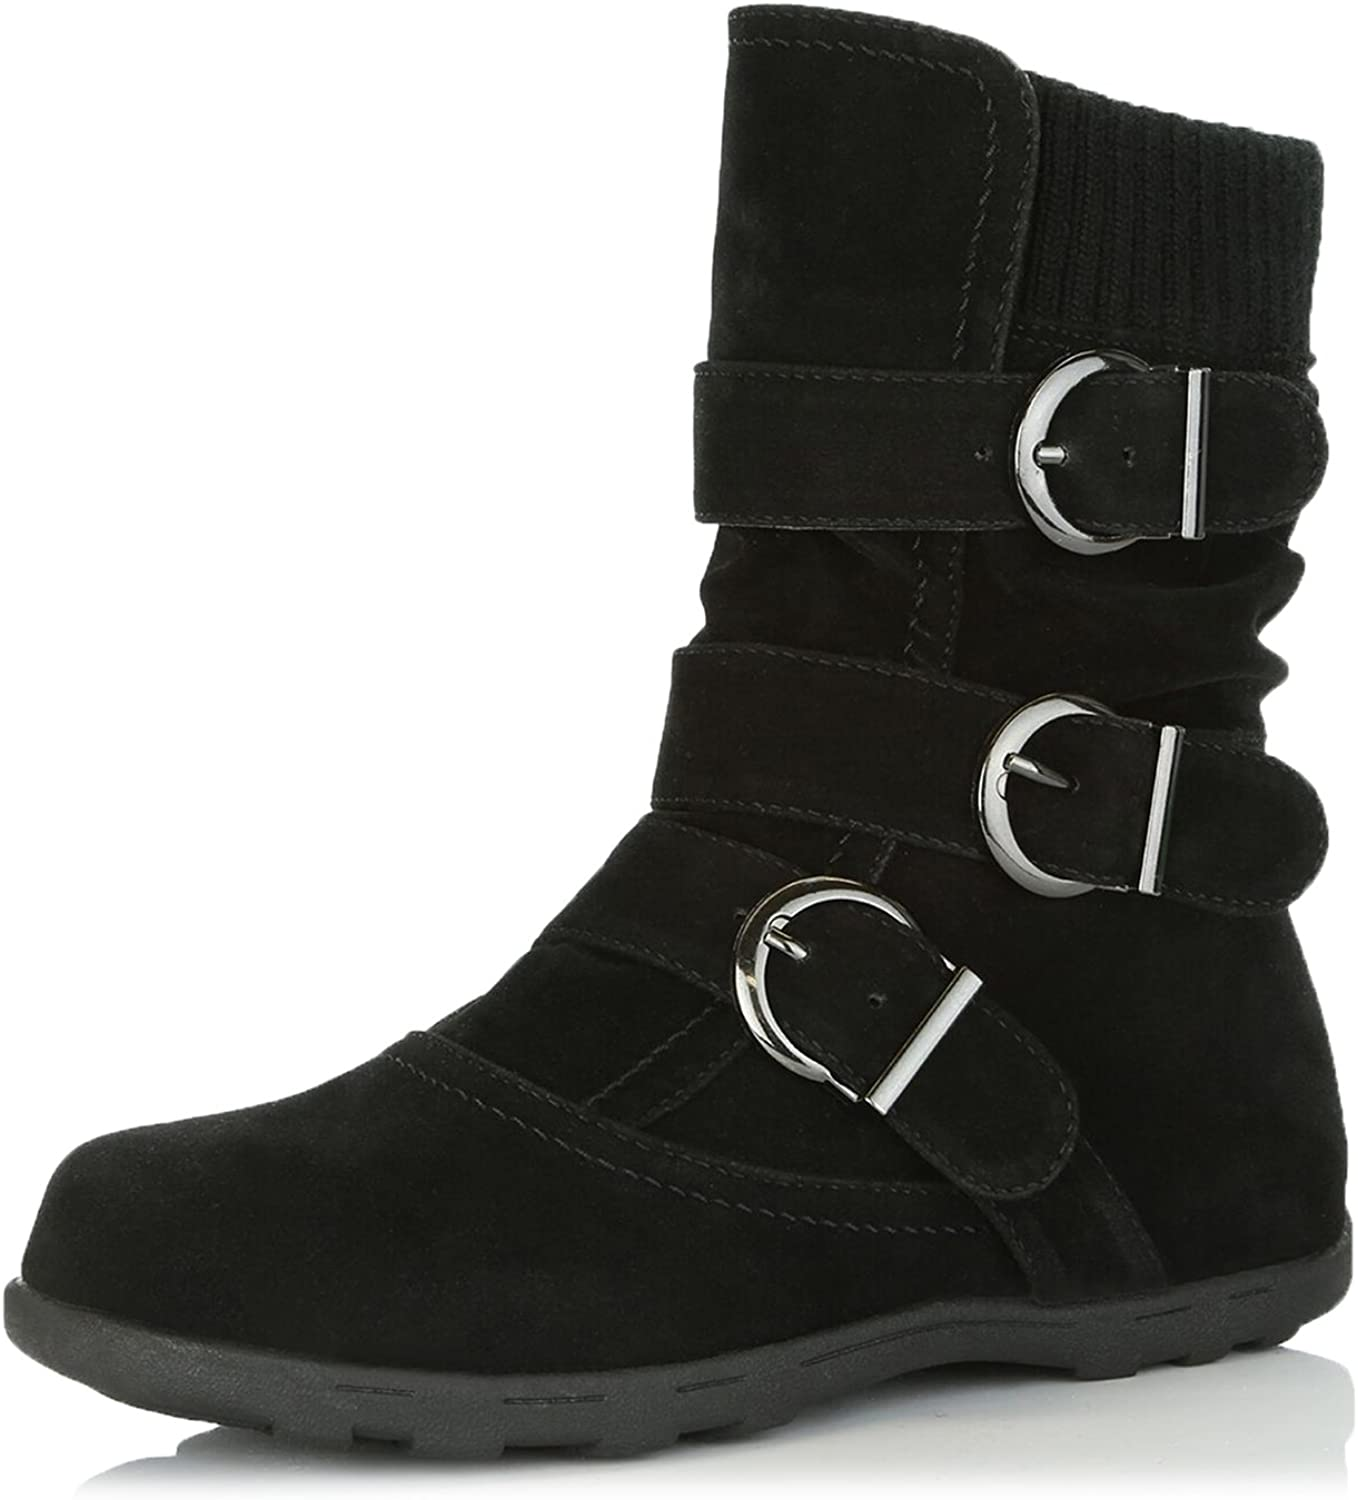 Dailyshoes Women's Winter Snow Boots Buckles Warm Cozy Ankle Mid Calf Slouch